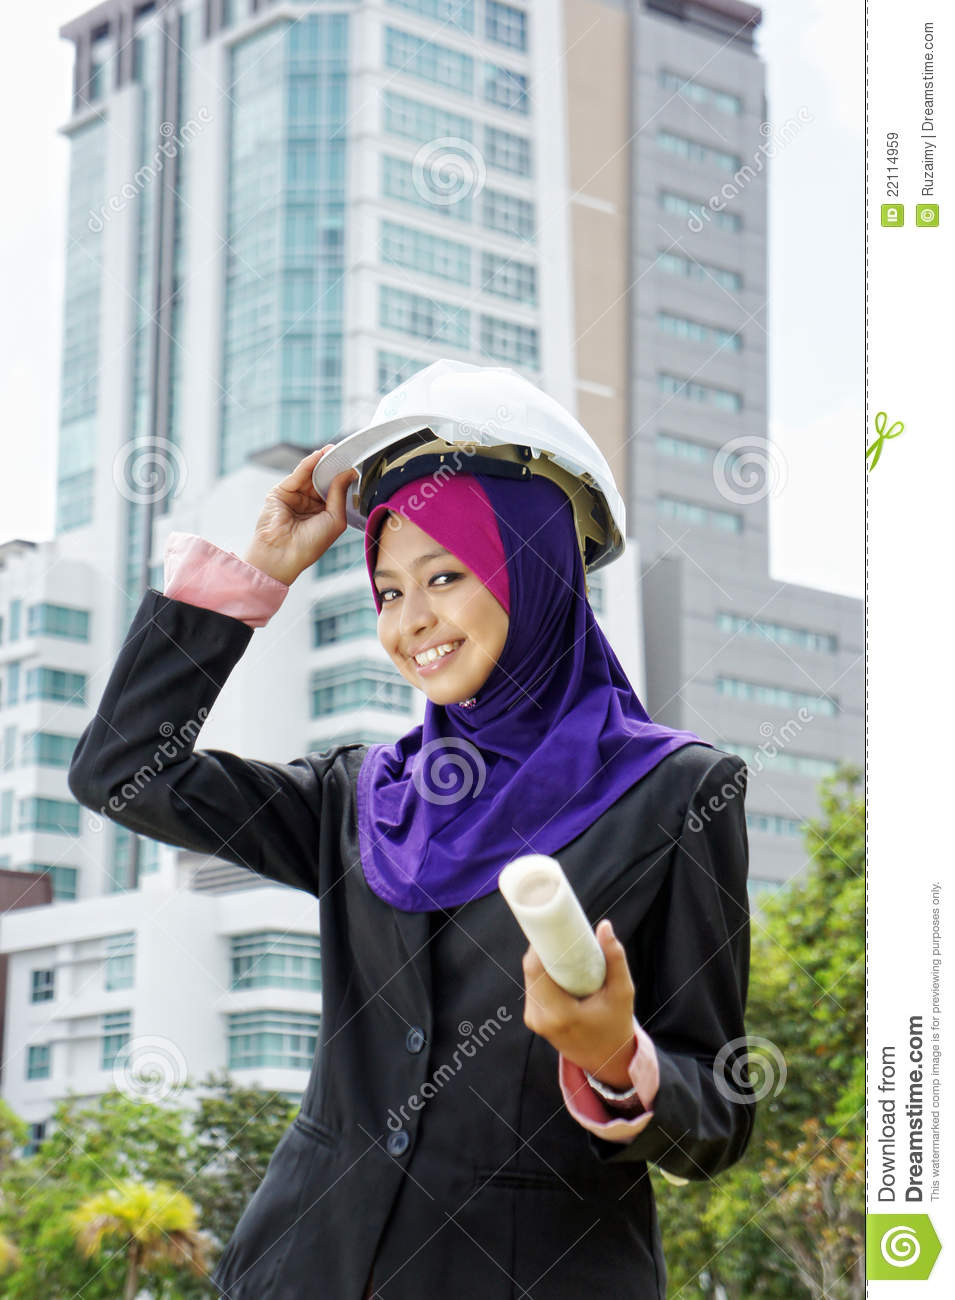 pelican muslim women dating site Commercial mortgages 101: everything you need to know to create a winning loan request package by michael reinhard whether you are engaging substantiating the ebook commercial mortgages 101.